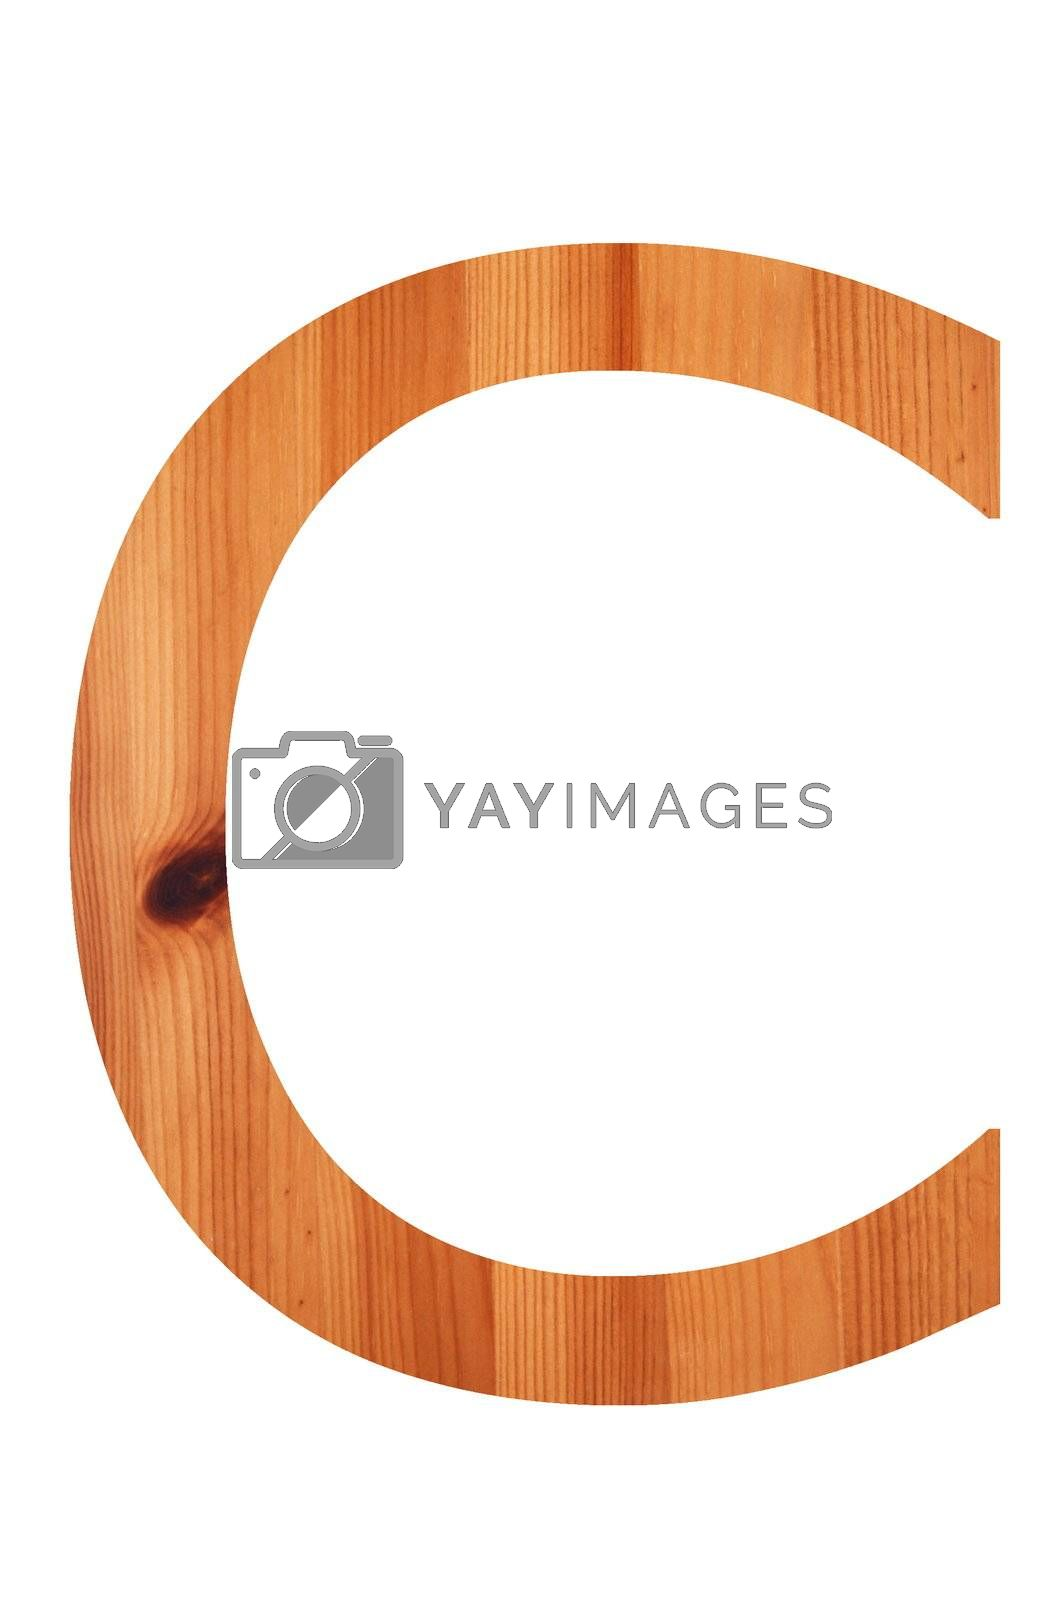 Royalty free image of wood alphabet C by gunnar3000